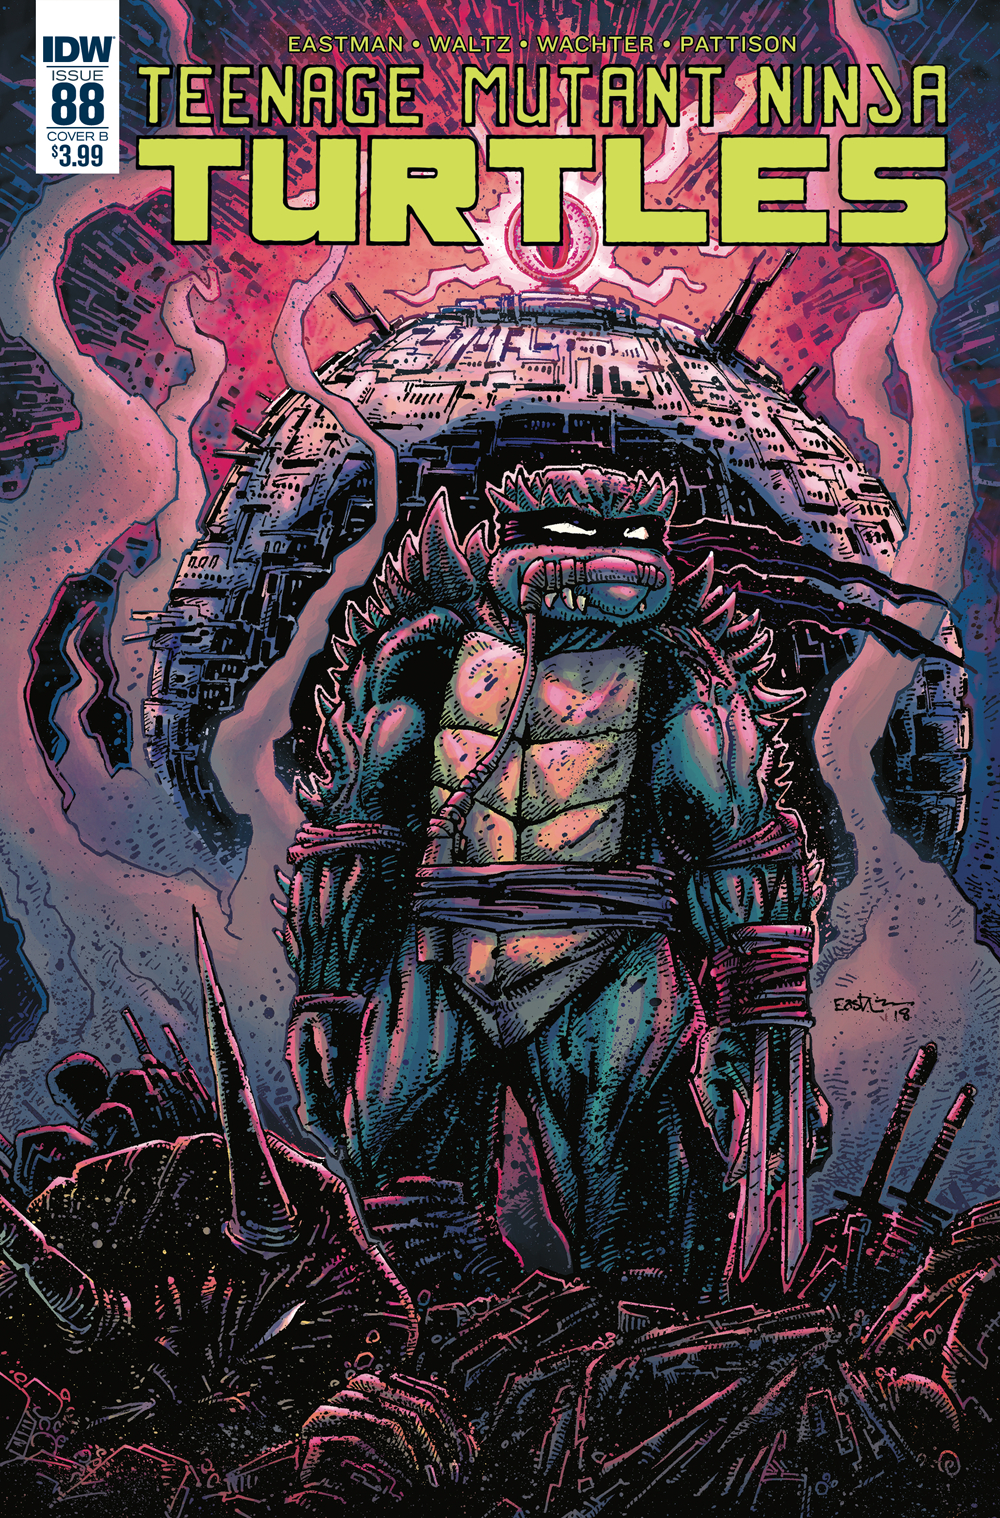 TMNT ONGOING #88 CVR B EASTMAN